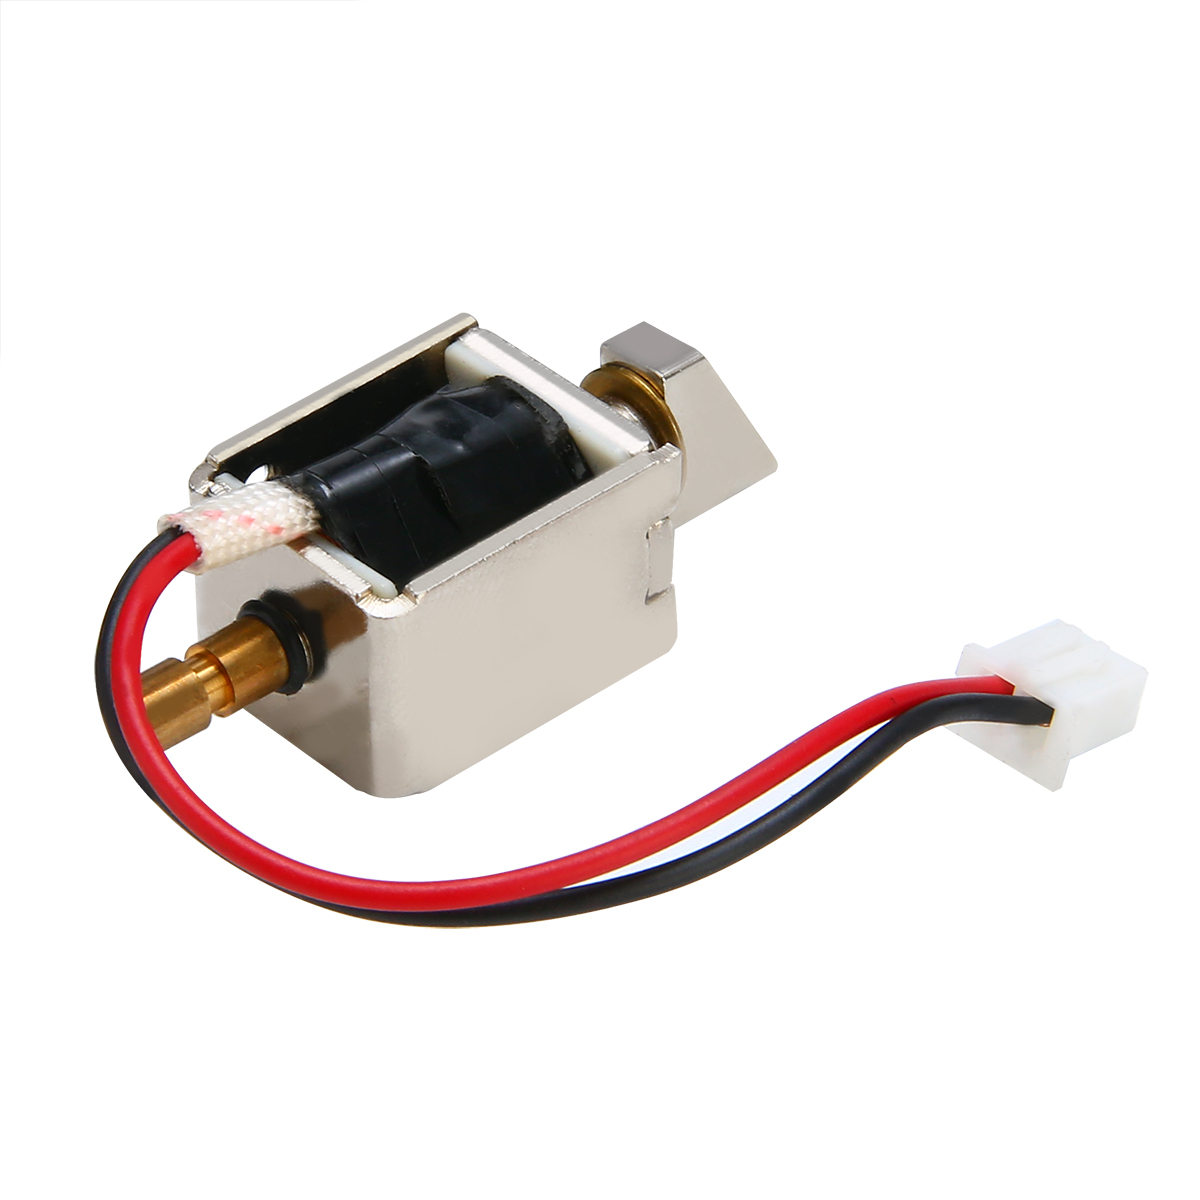 NEW 12V DC 1.1A Electric Lock Assembly Solenoid Cabinet Door Drawer Lock